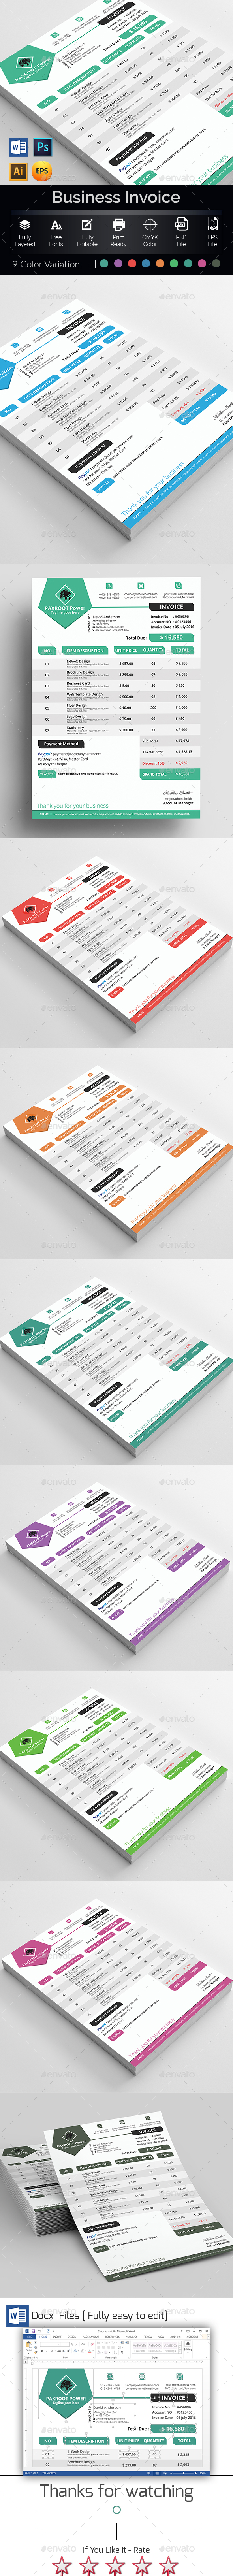 Invoice Template Word - Proposals & Invoices Stationery